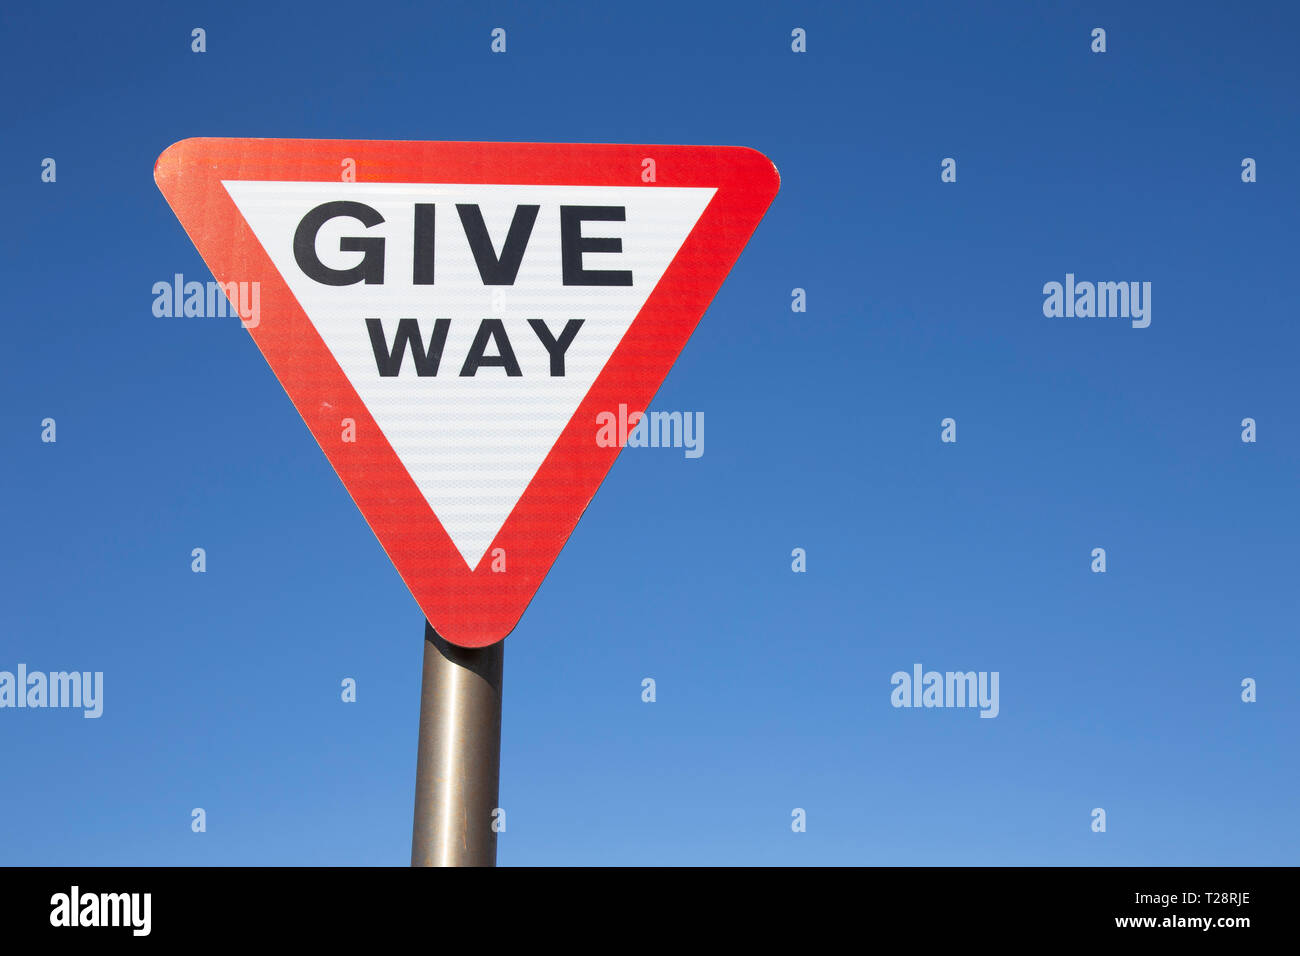 Give Way sign against blue sky Stock Photo